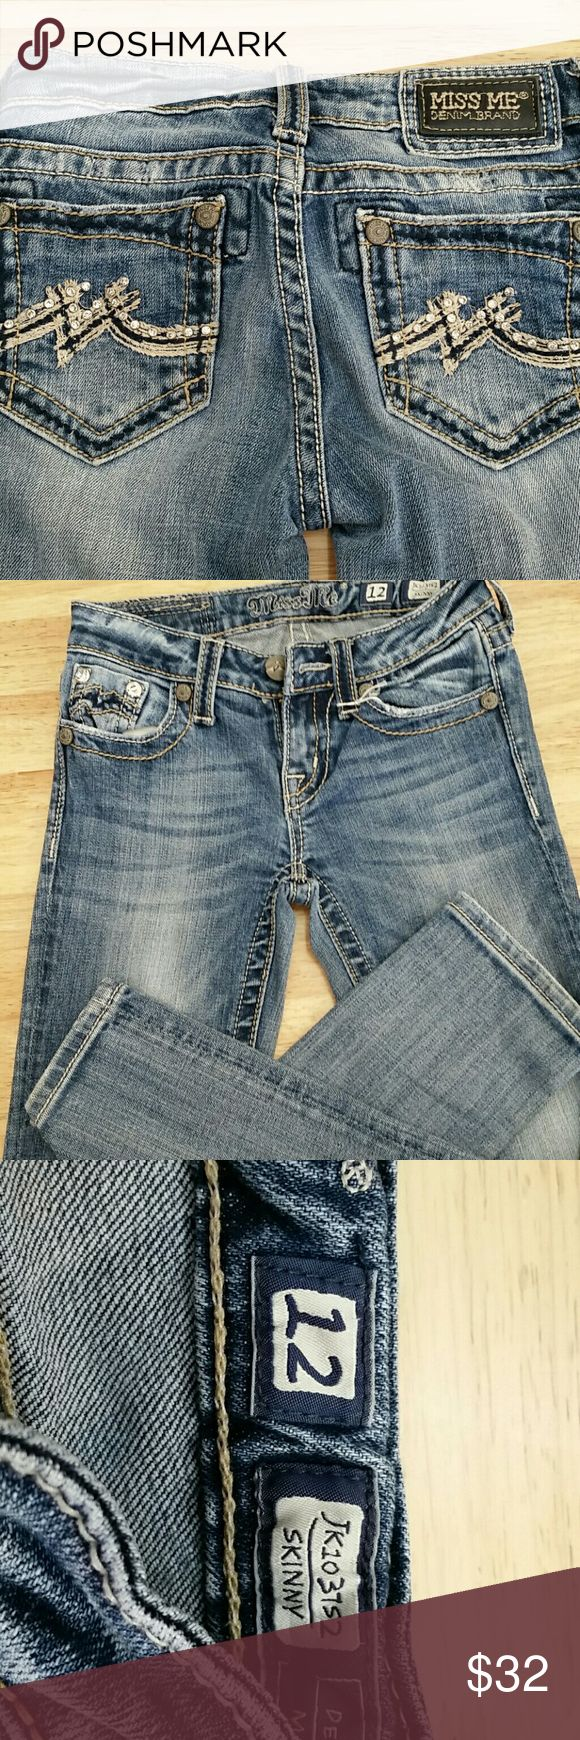 Girls Miss Me jeans Gently used girls Miss Me jeans Miss Me Bottoms Jeans